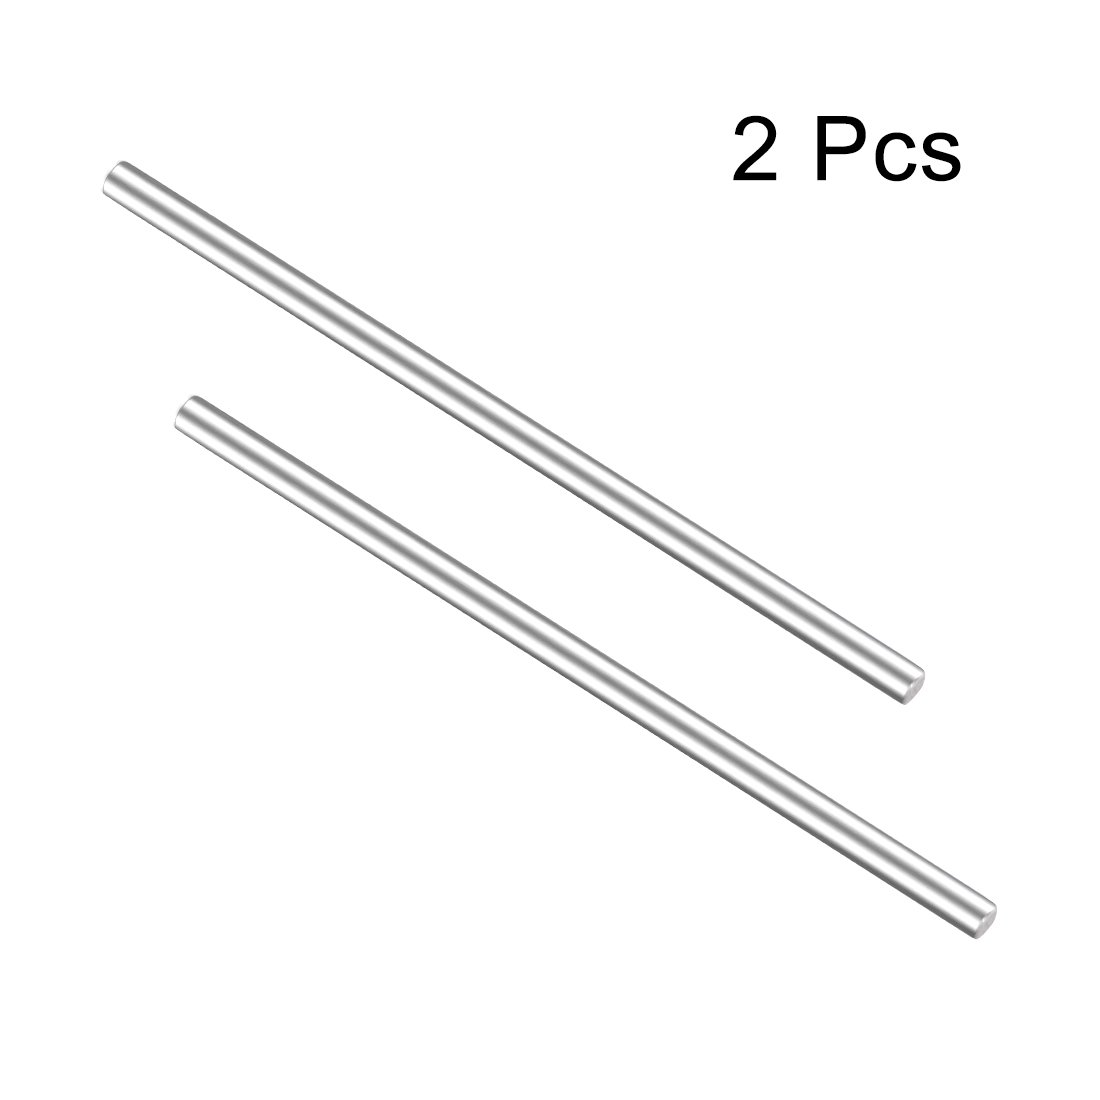 uxcell 2Pcs Stainless Steel Shaft Round Axles 70mmx3mm for DIY Toy RC Car Model Part